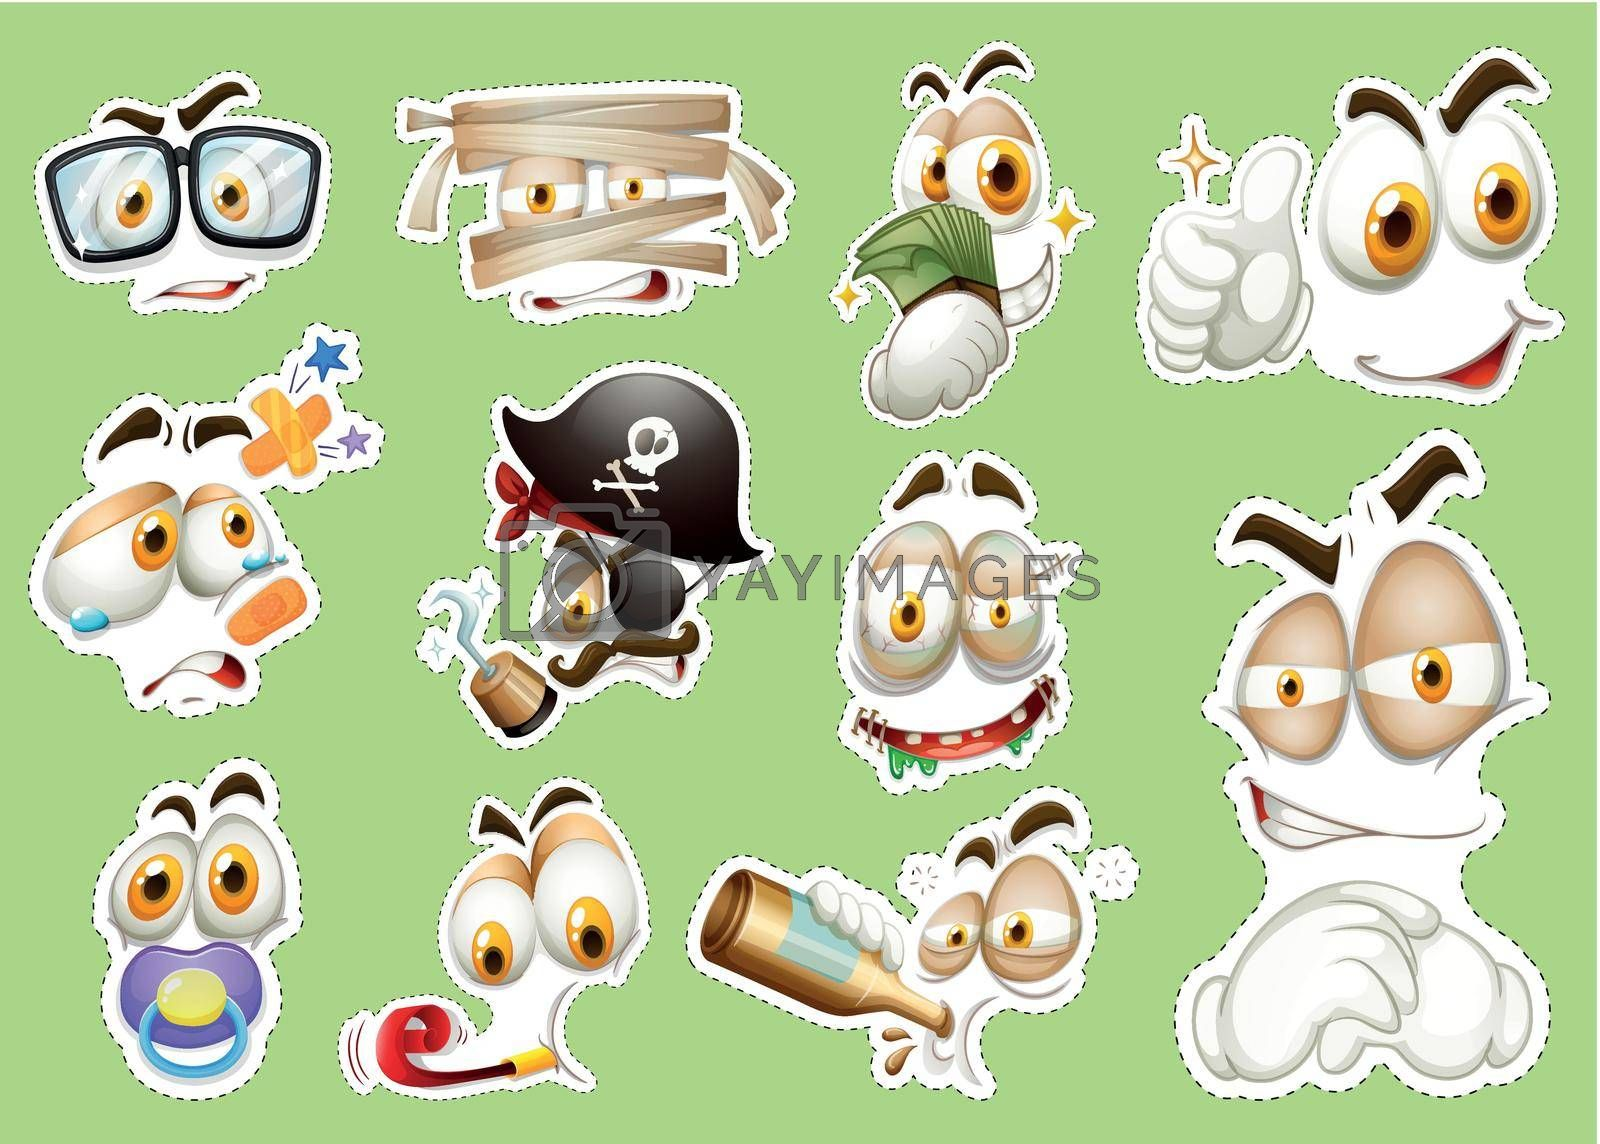 Sticker design with different faces illustration